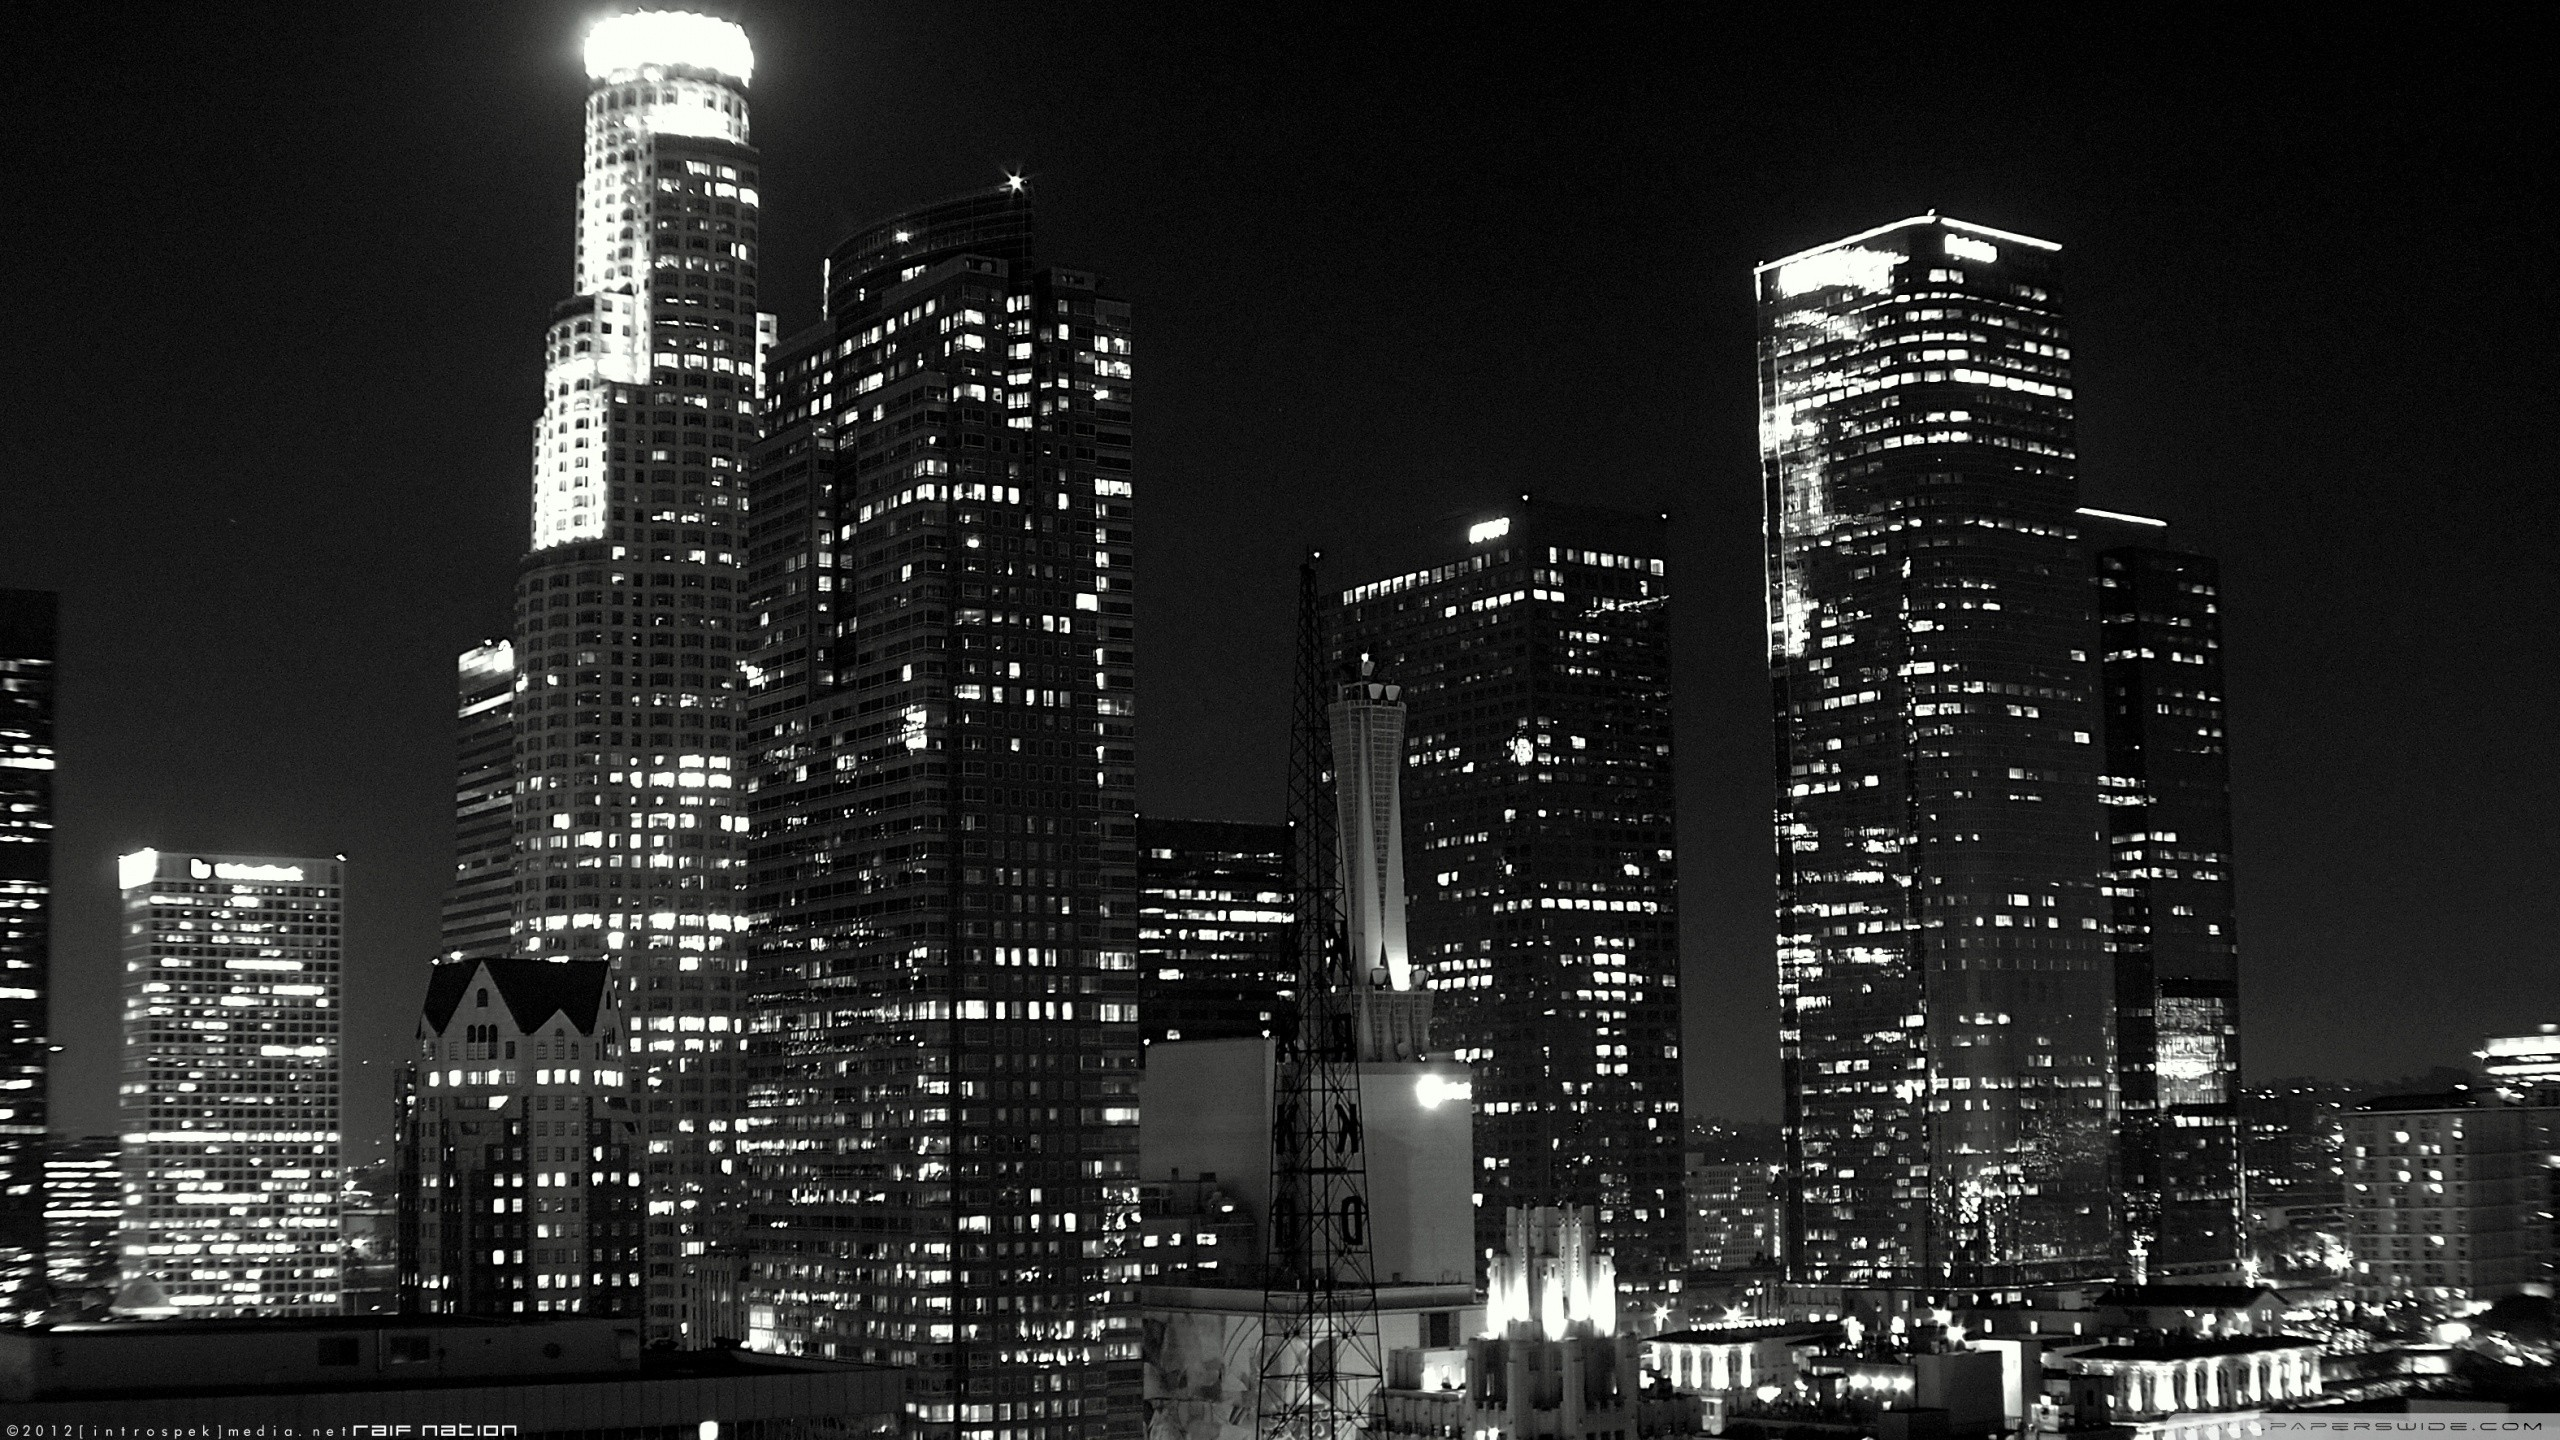 Black And White Cityscapes Buildings Los Angeles Wallpaper 2560x1440 189937 Wallpaperup